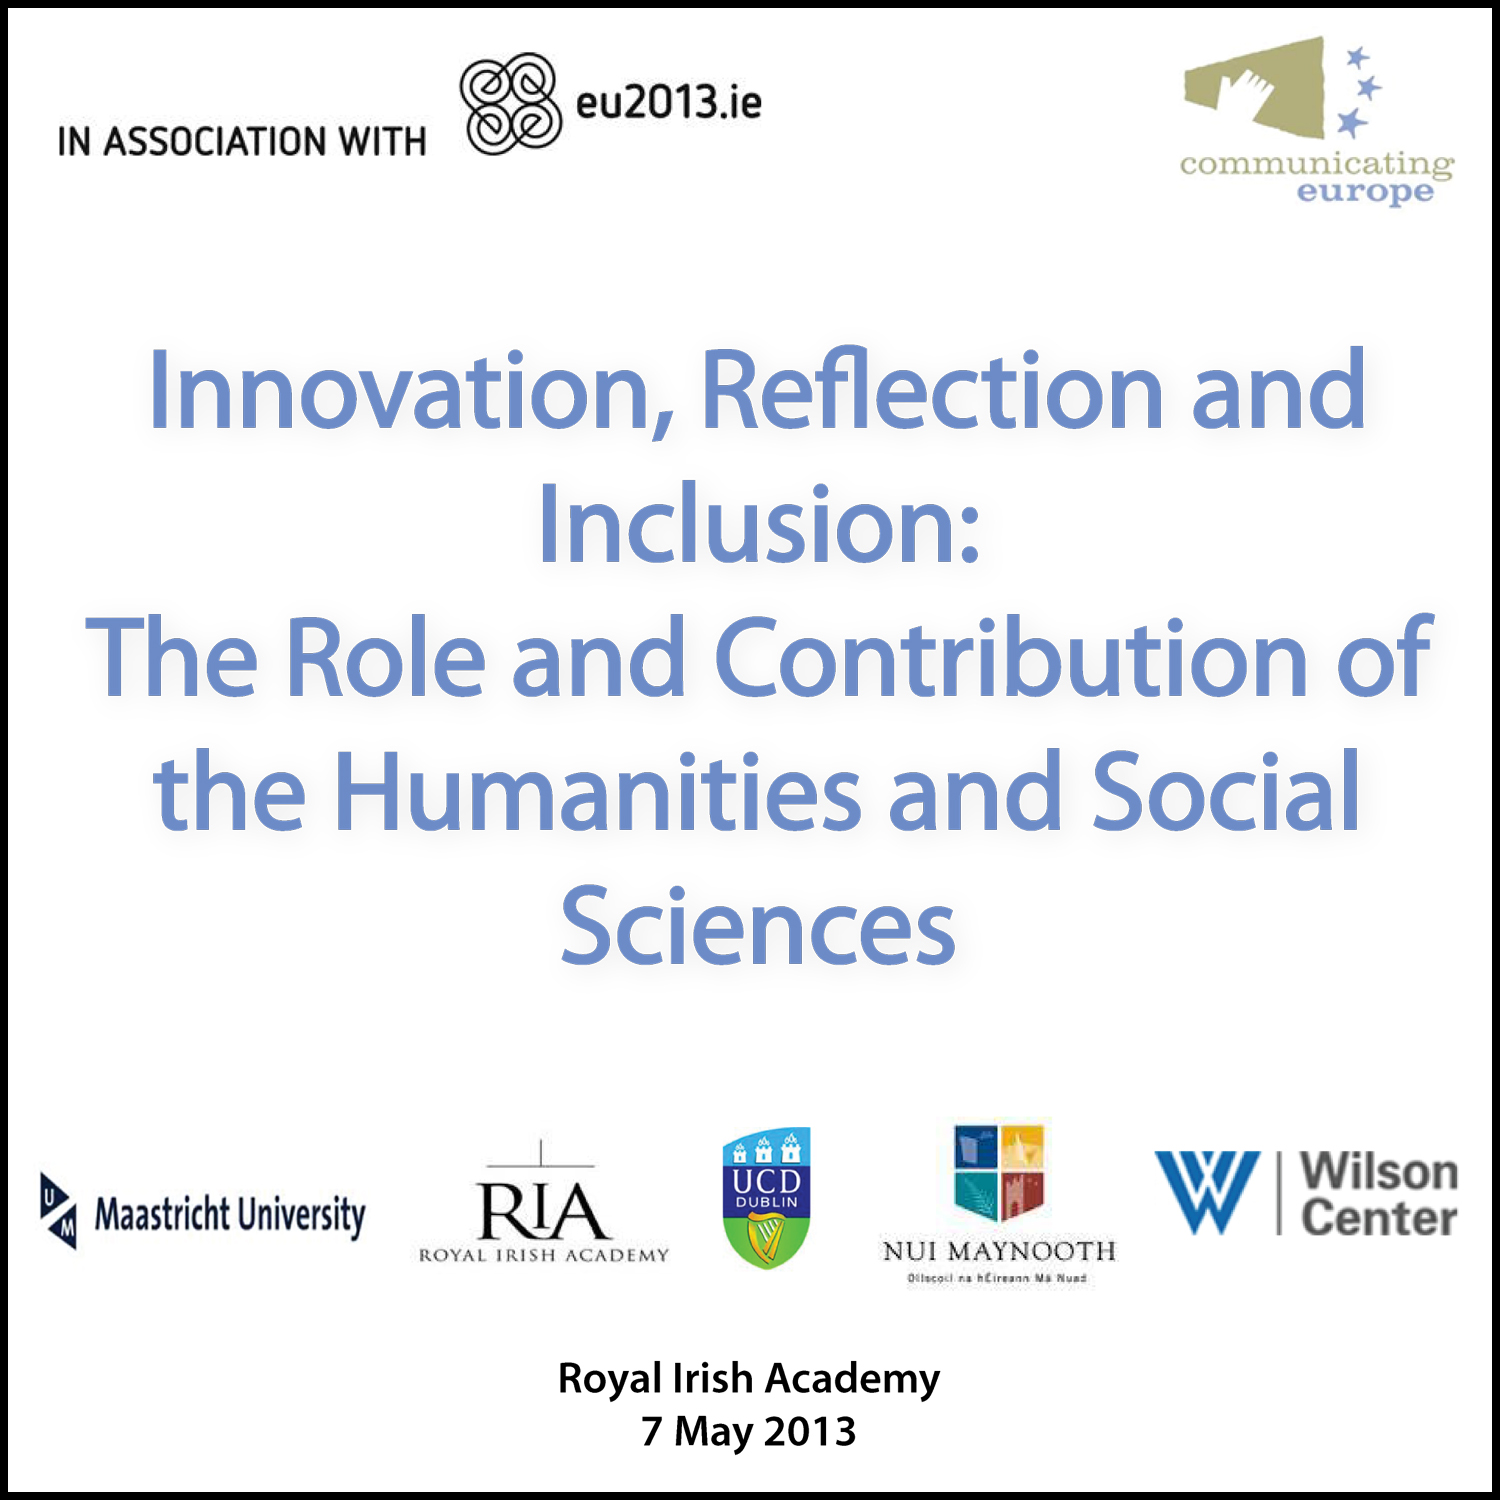 The Role and Contribution of the Humanities and Social Sciences Conference Podcast